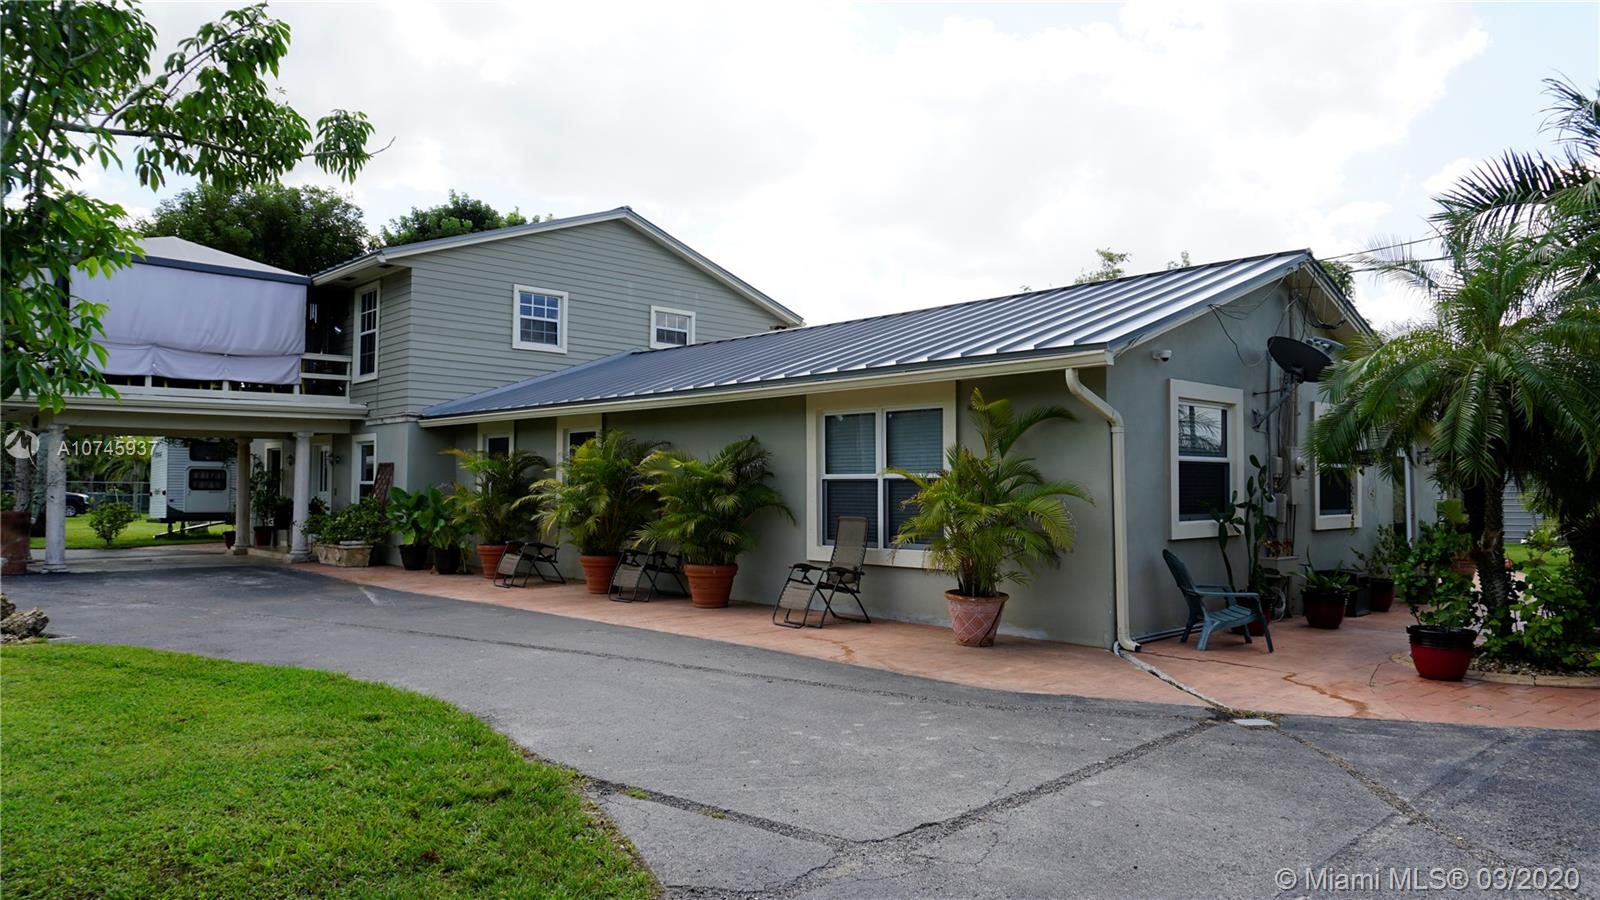 16100 SW 272nd St, Homestead, FL 33031 - Homestead, FL real estate listing